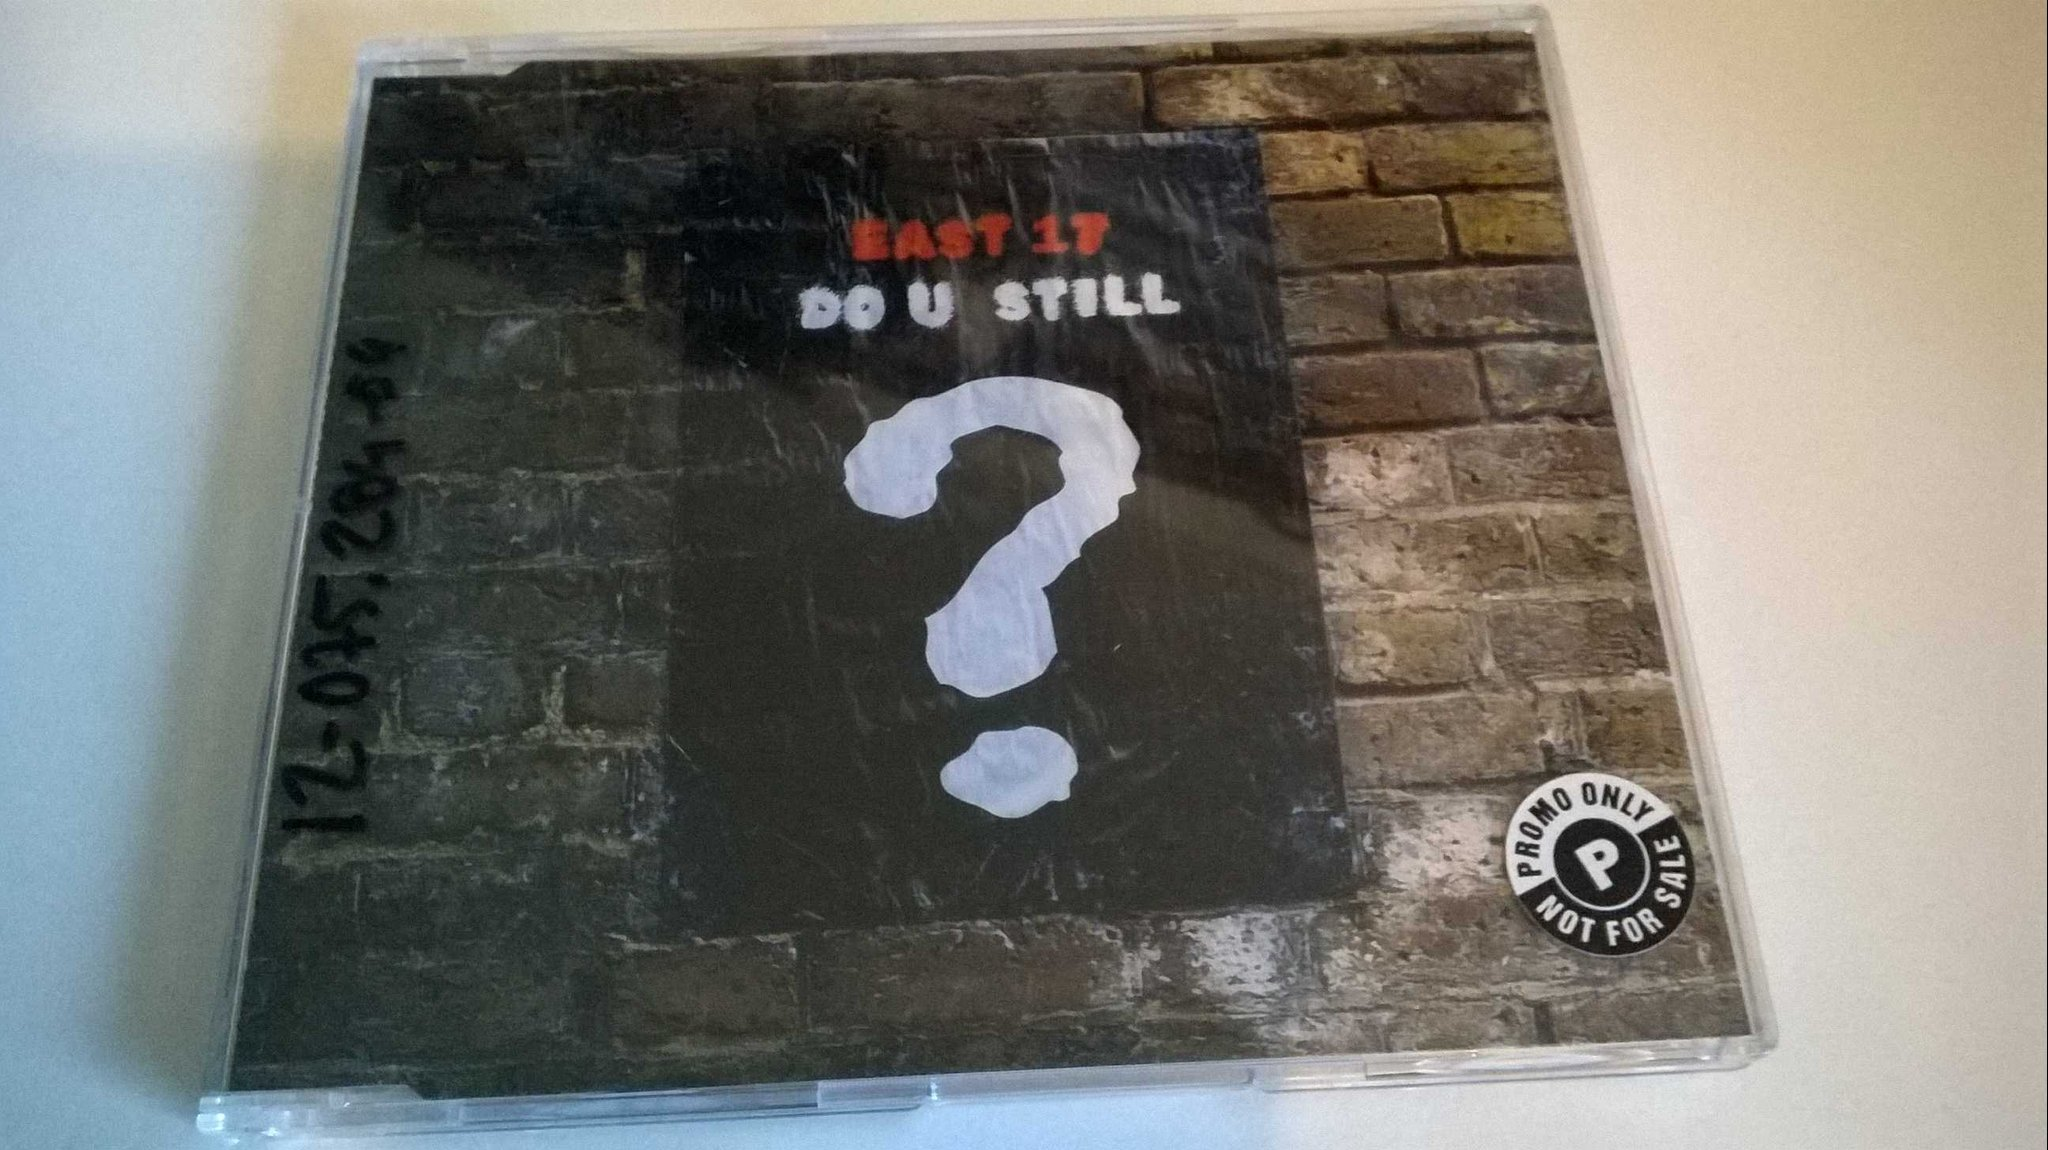 East 17 - Do U Still? Promo, CD